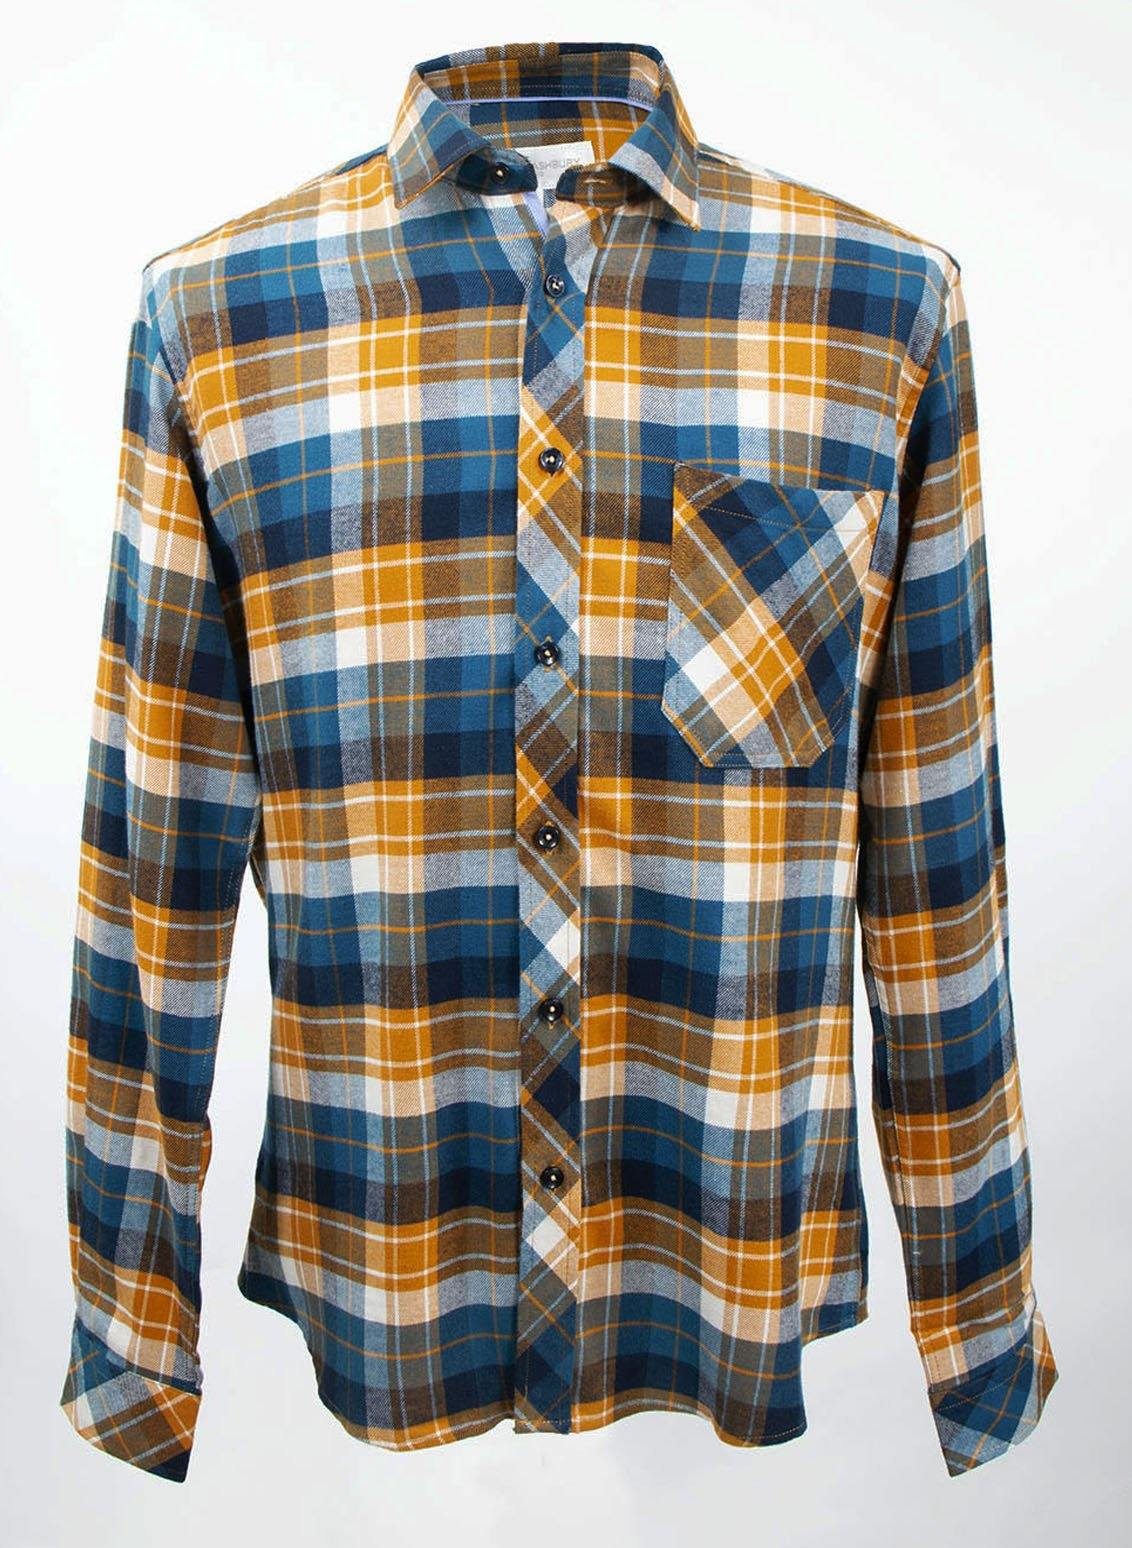 Donovan Shirt - Haight & Ashbury